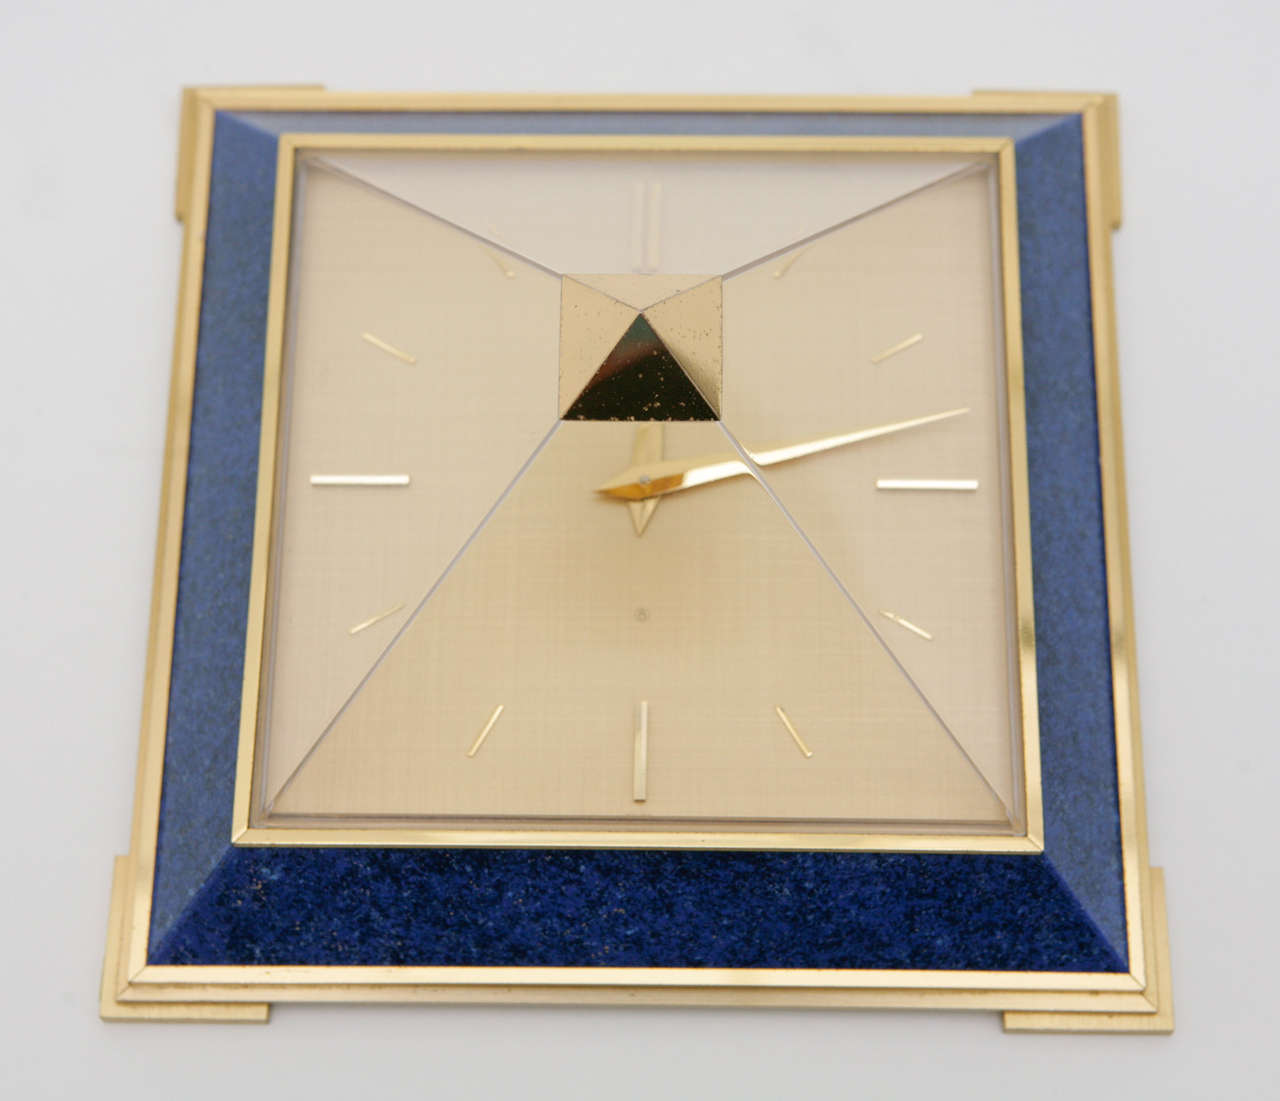 Pyramid Clock by Le Coultre image 5